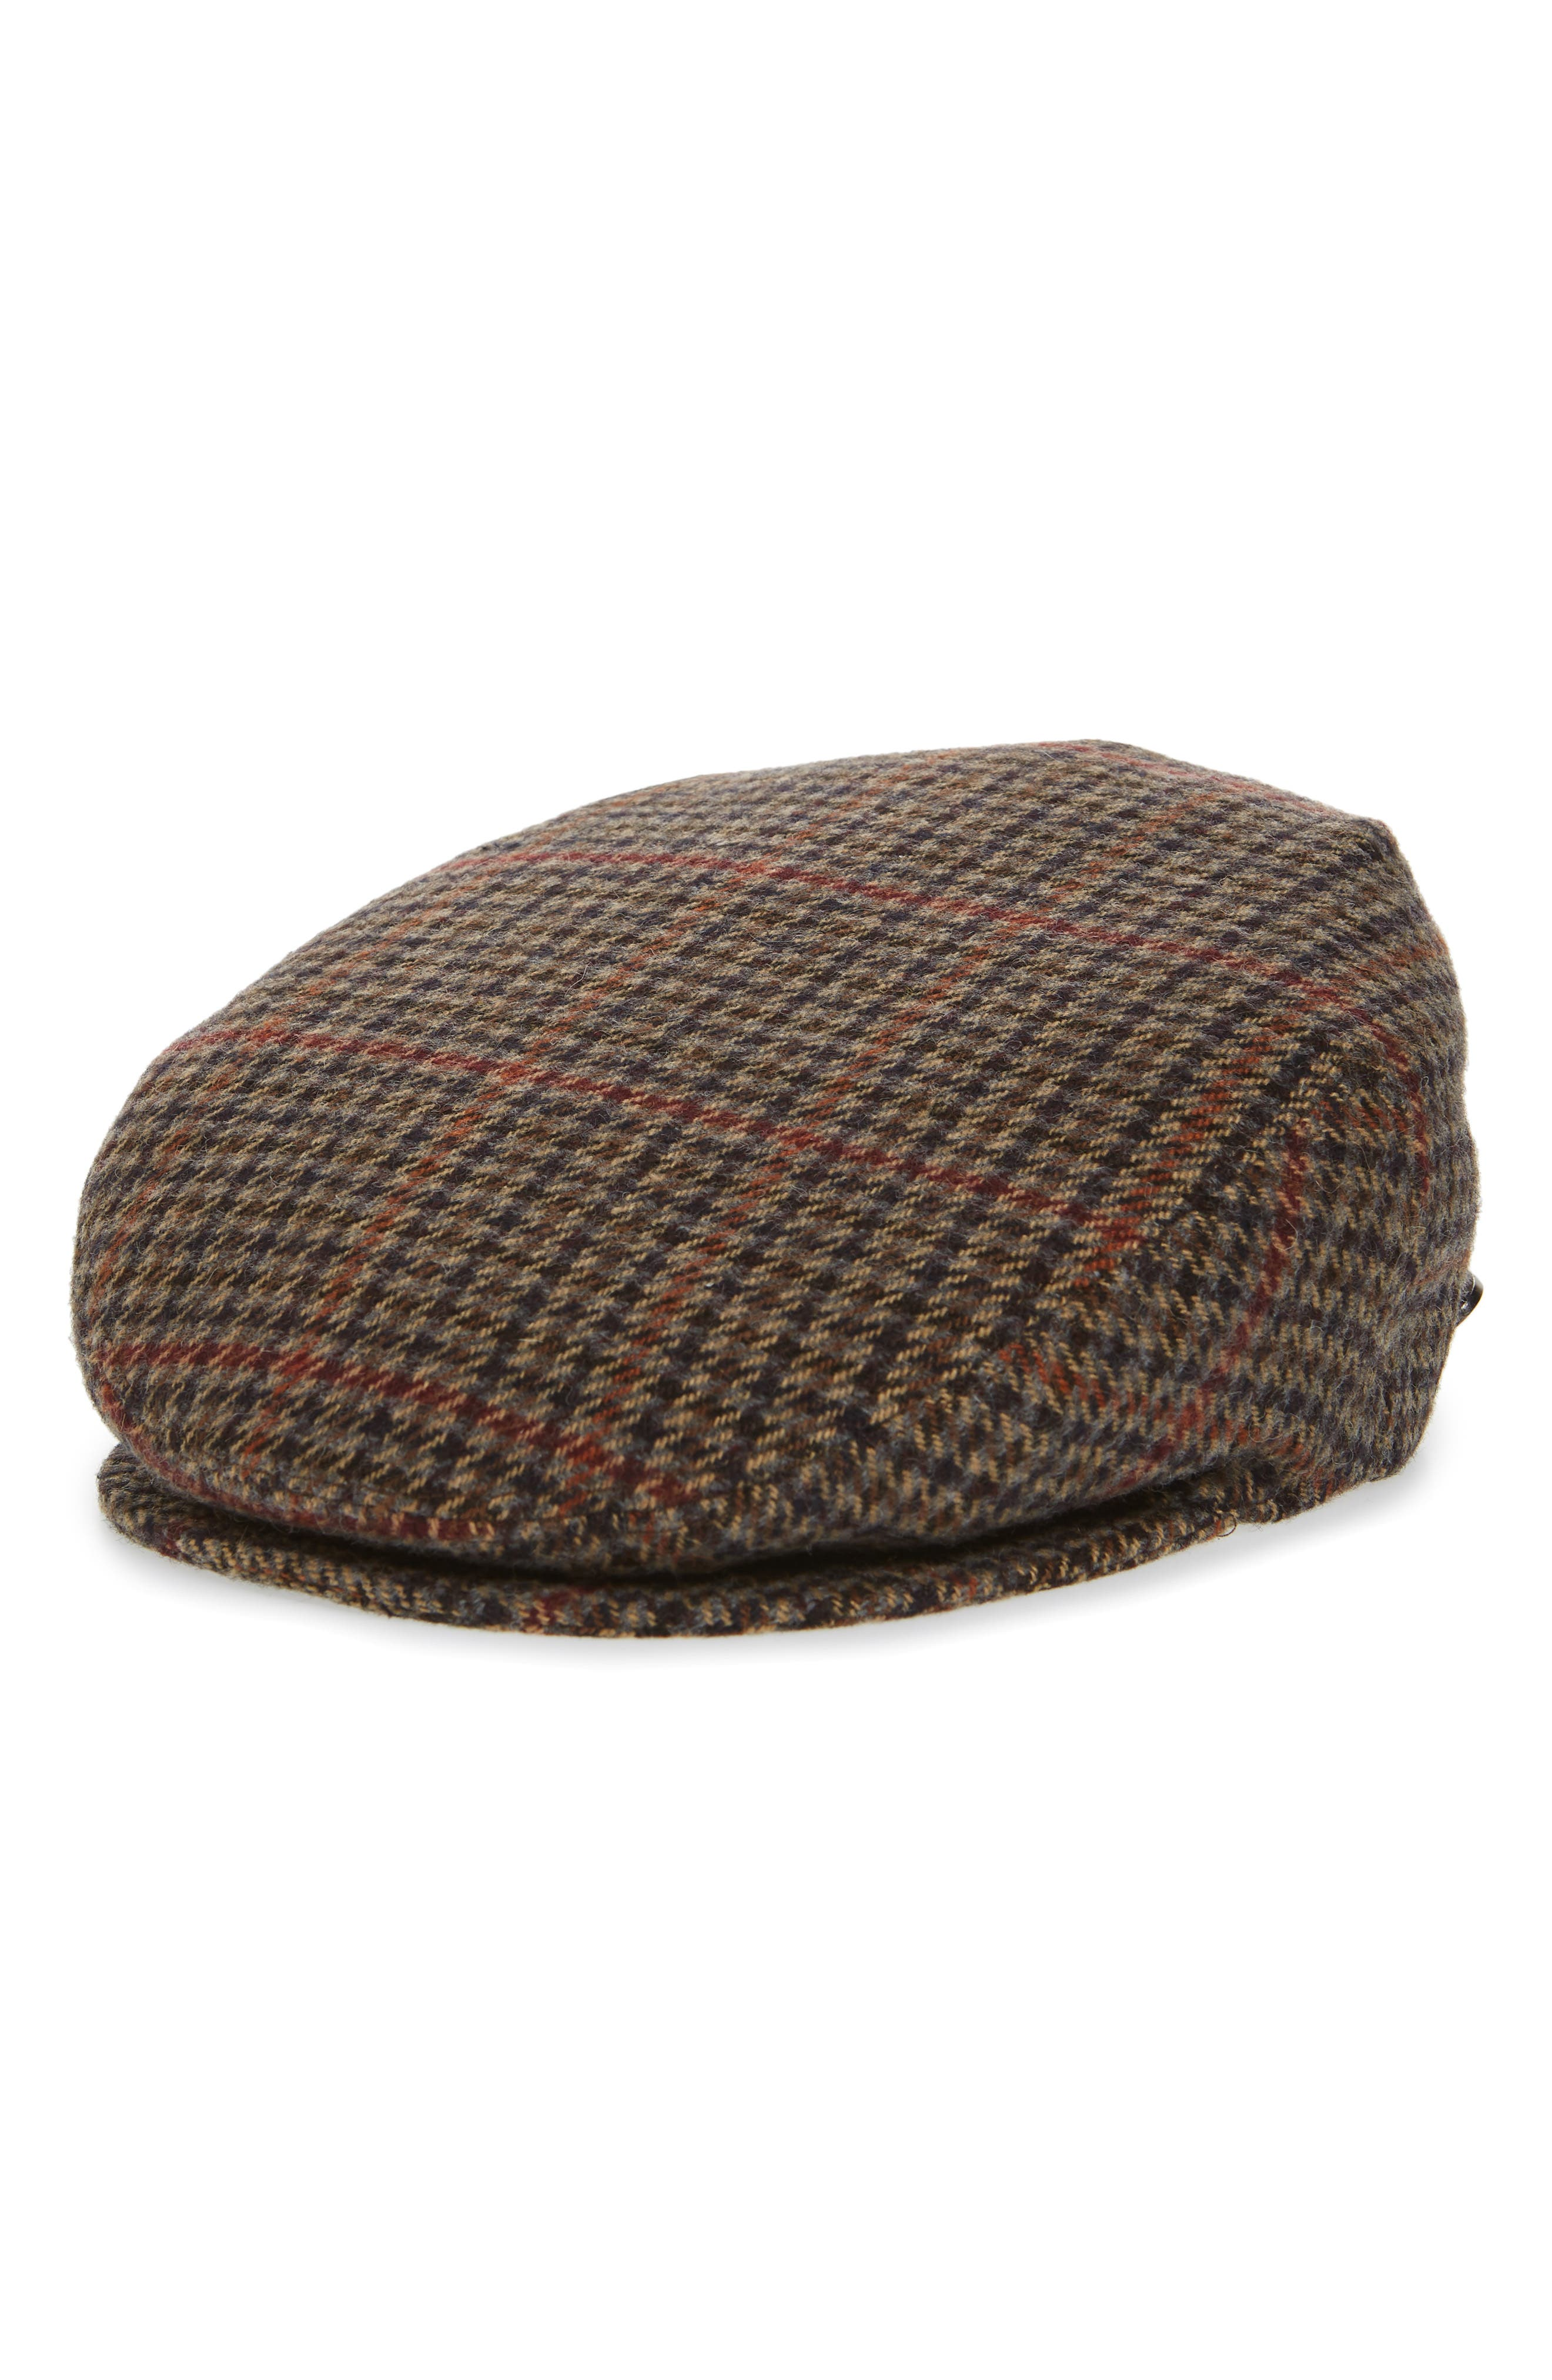 Lord Houndstooth Wool Driving Cap,                             Main thumbnail 1, color,                             001